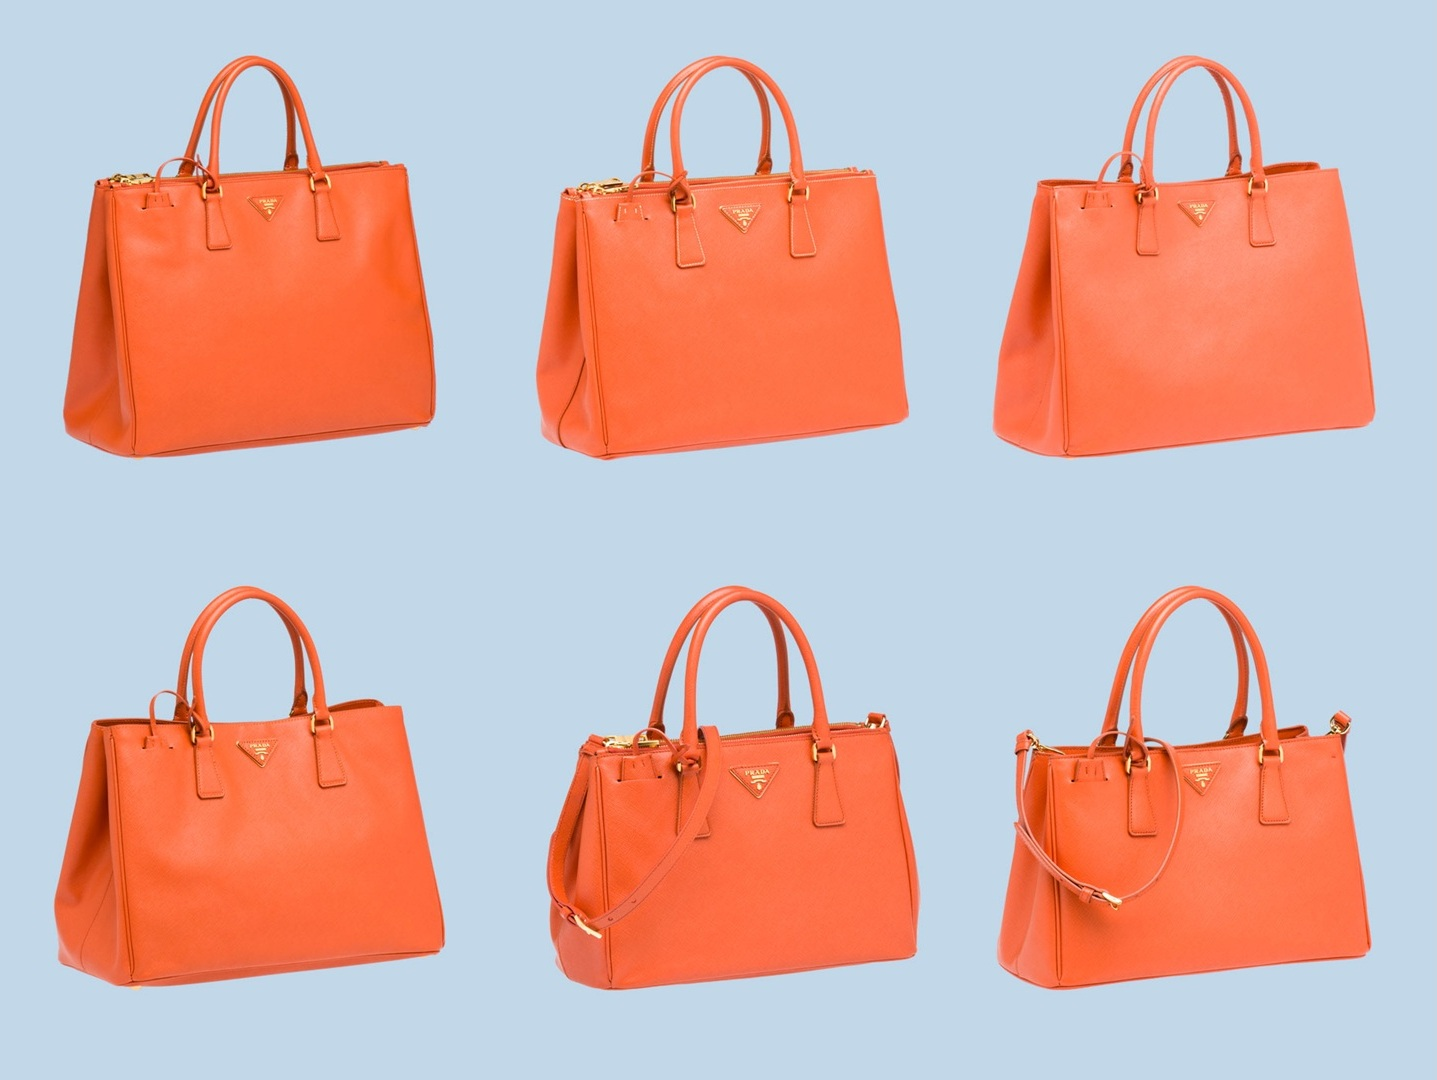 exact replica handbags - Prada+Galleria+Tote+Papaya+02.jpg